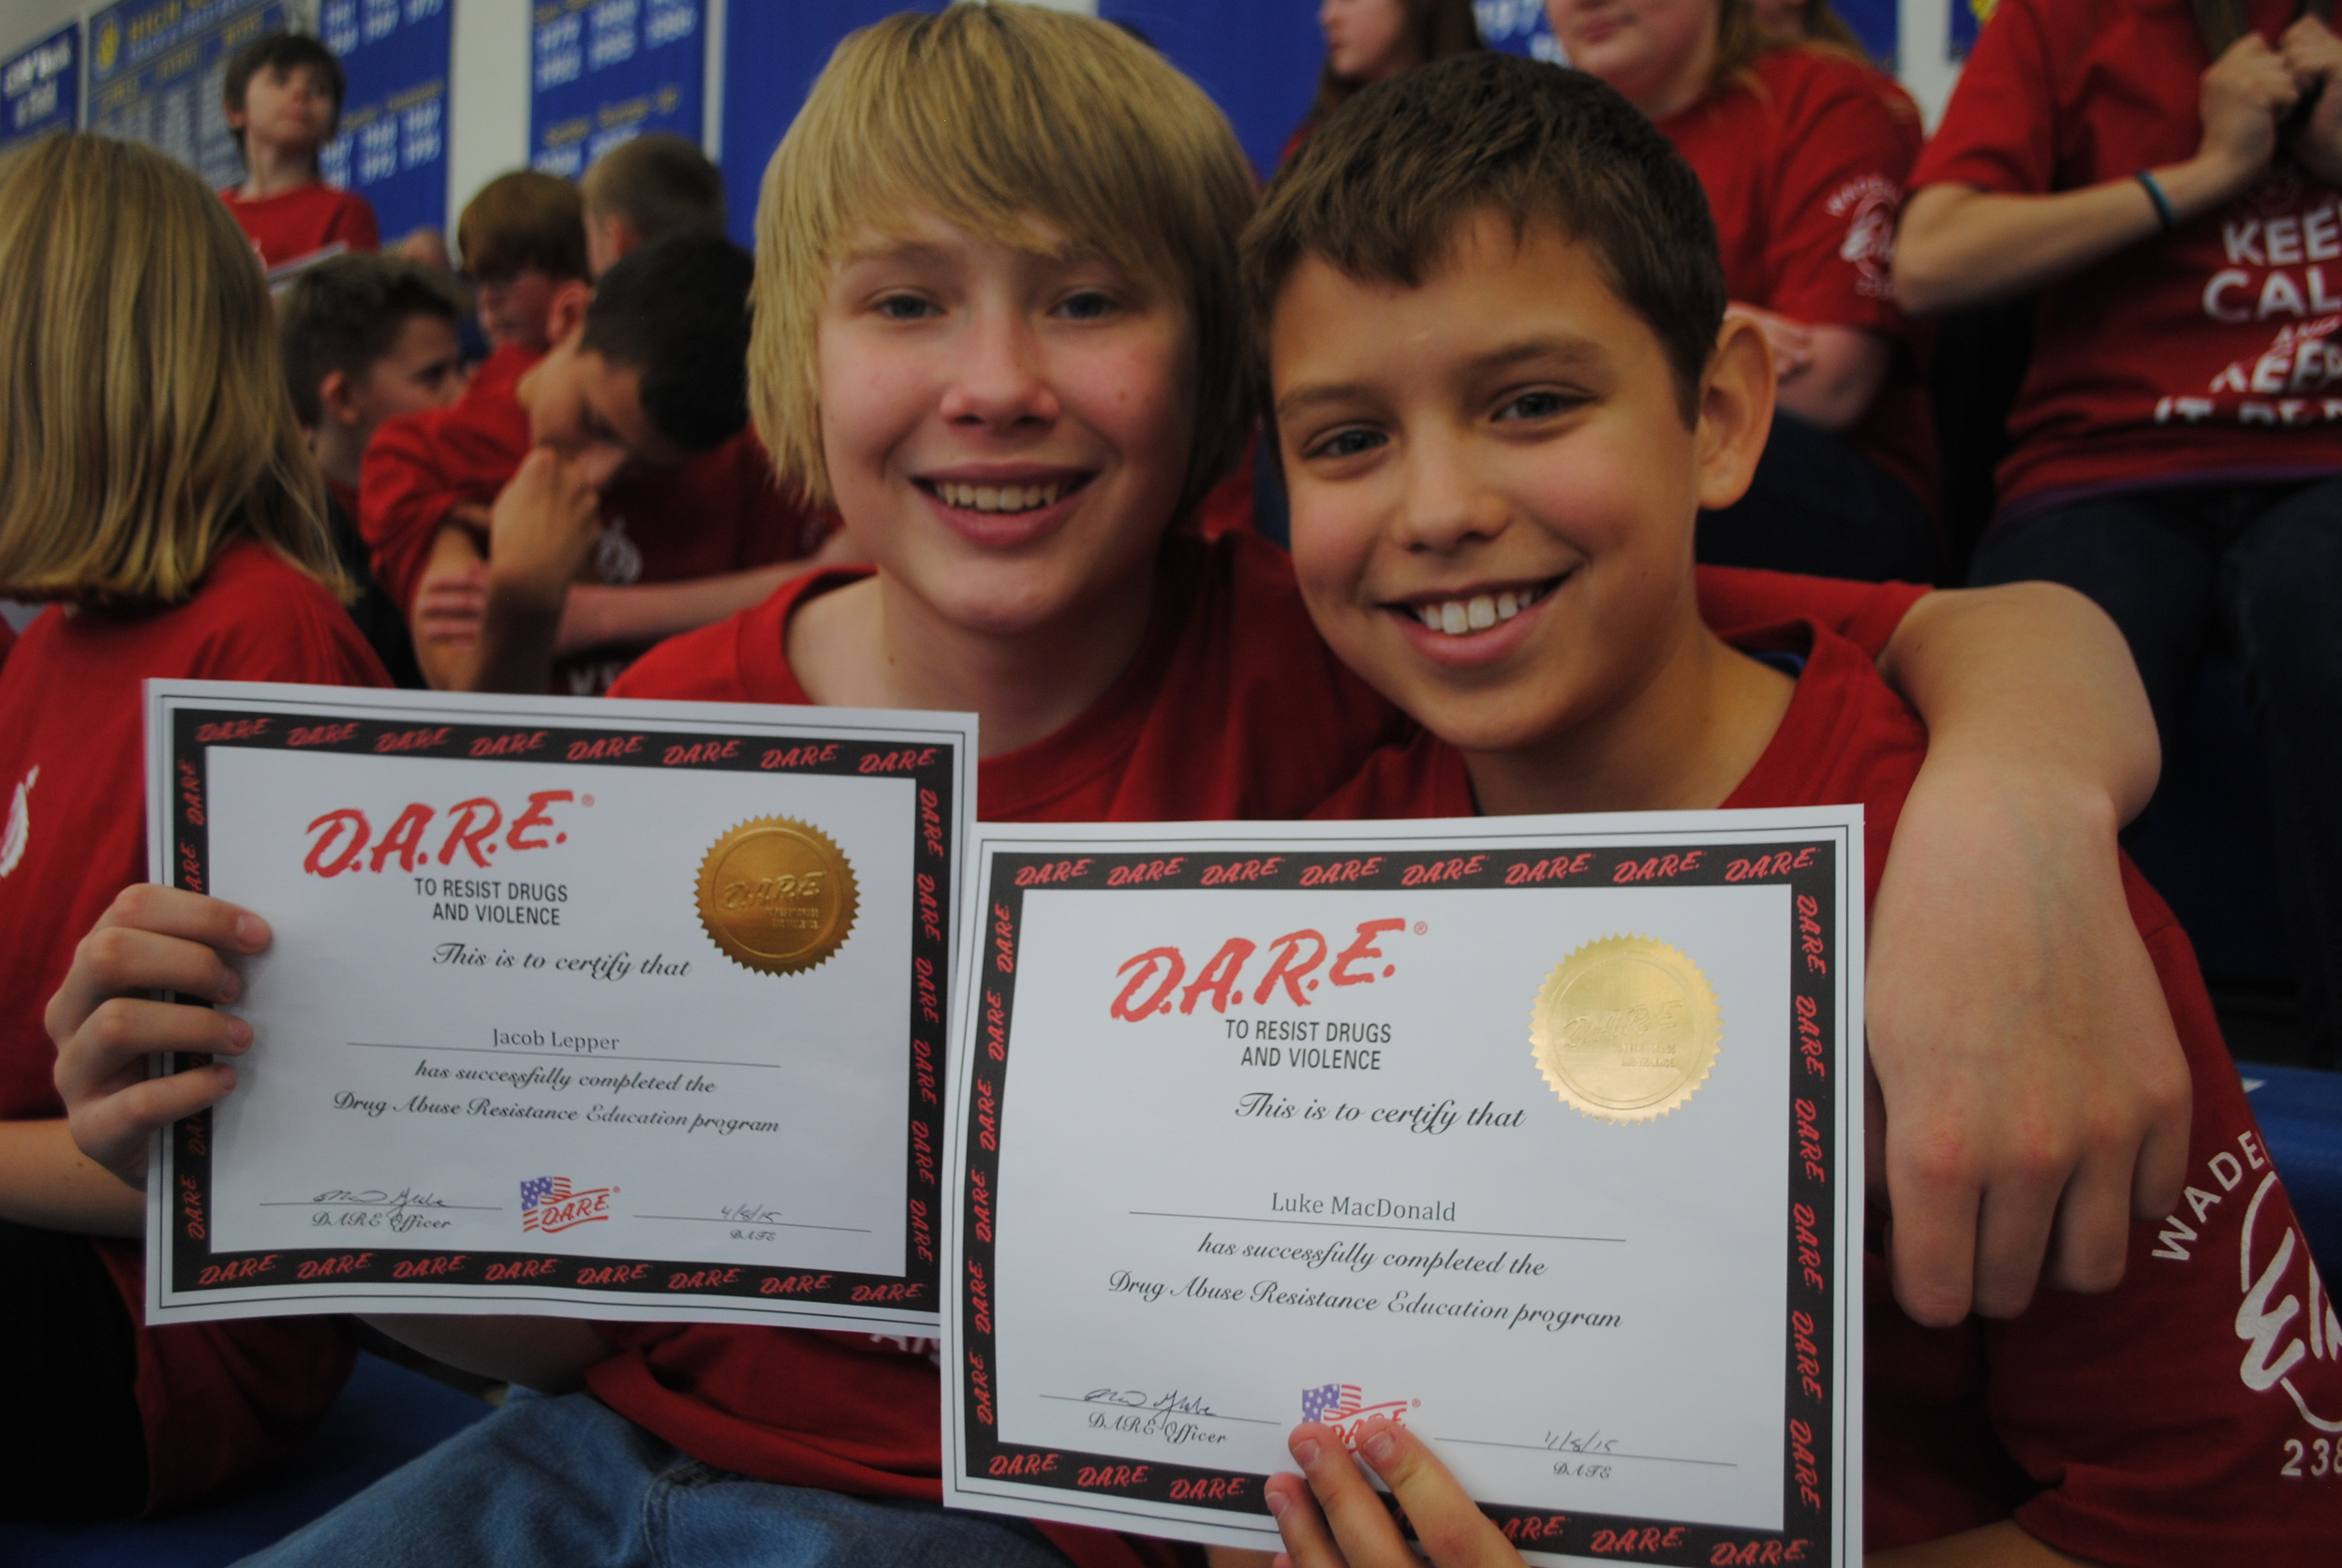 Jacob Lepper and Luke MacDonald proudly show their D.A.R.E. graduation certificates at the ceremony.